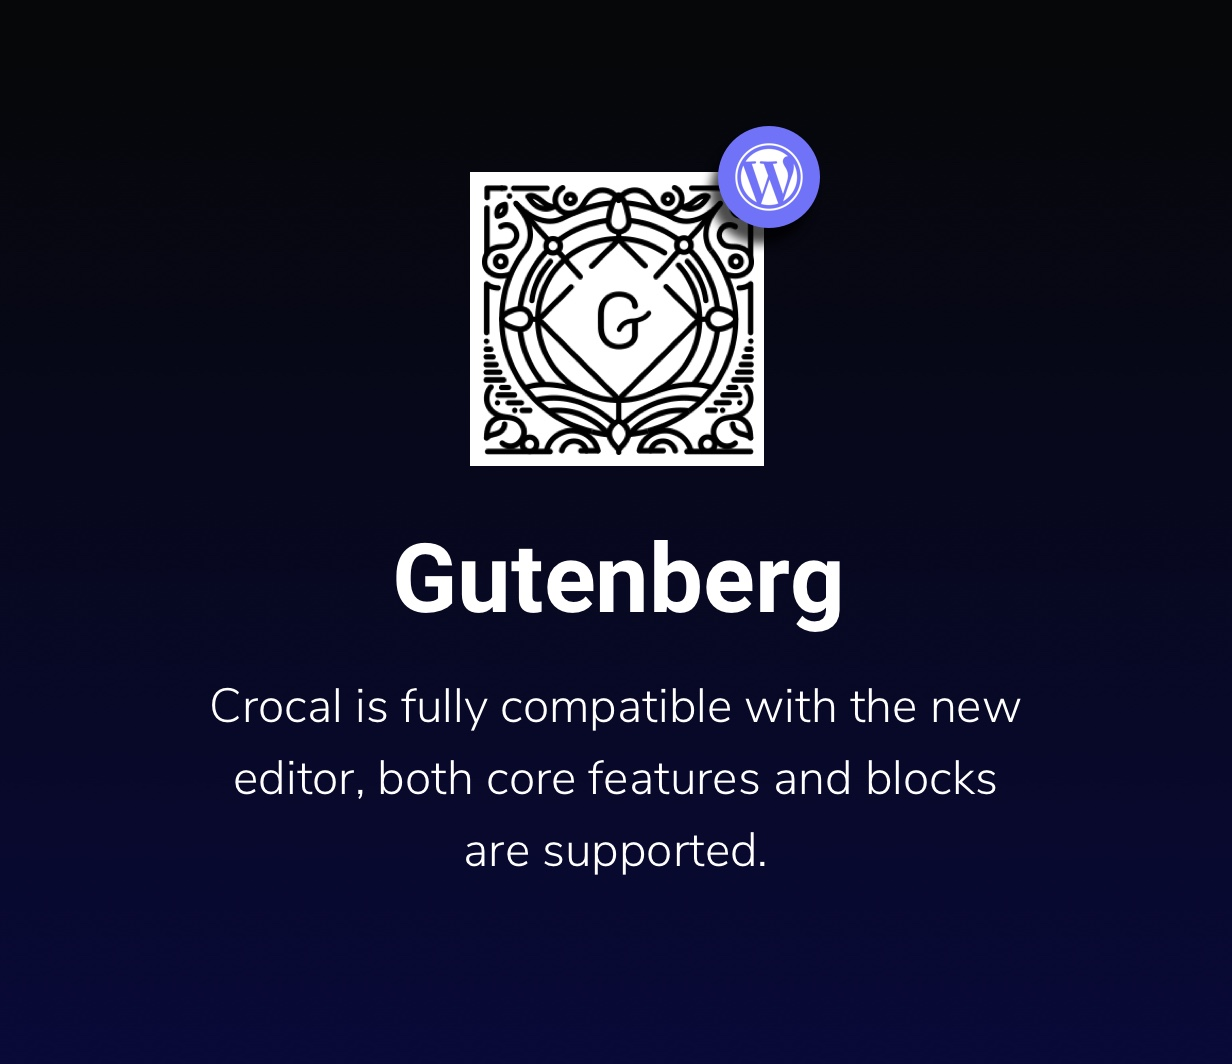 Crocal Gutenberg